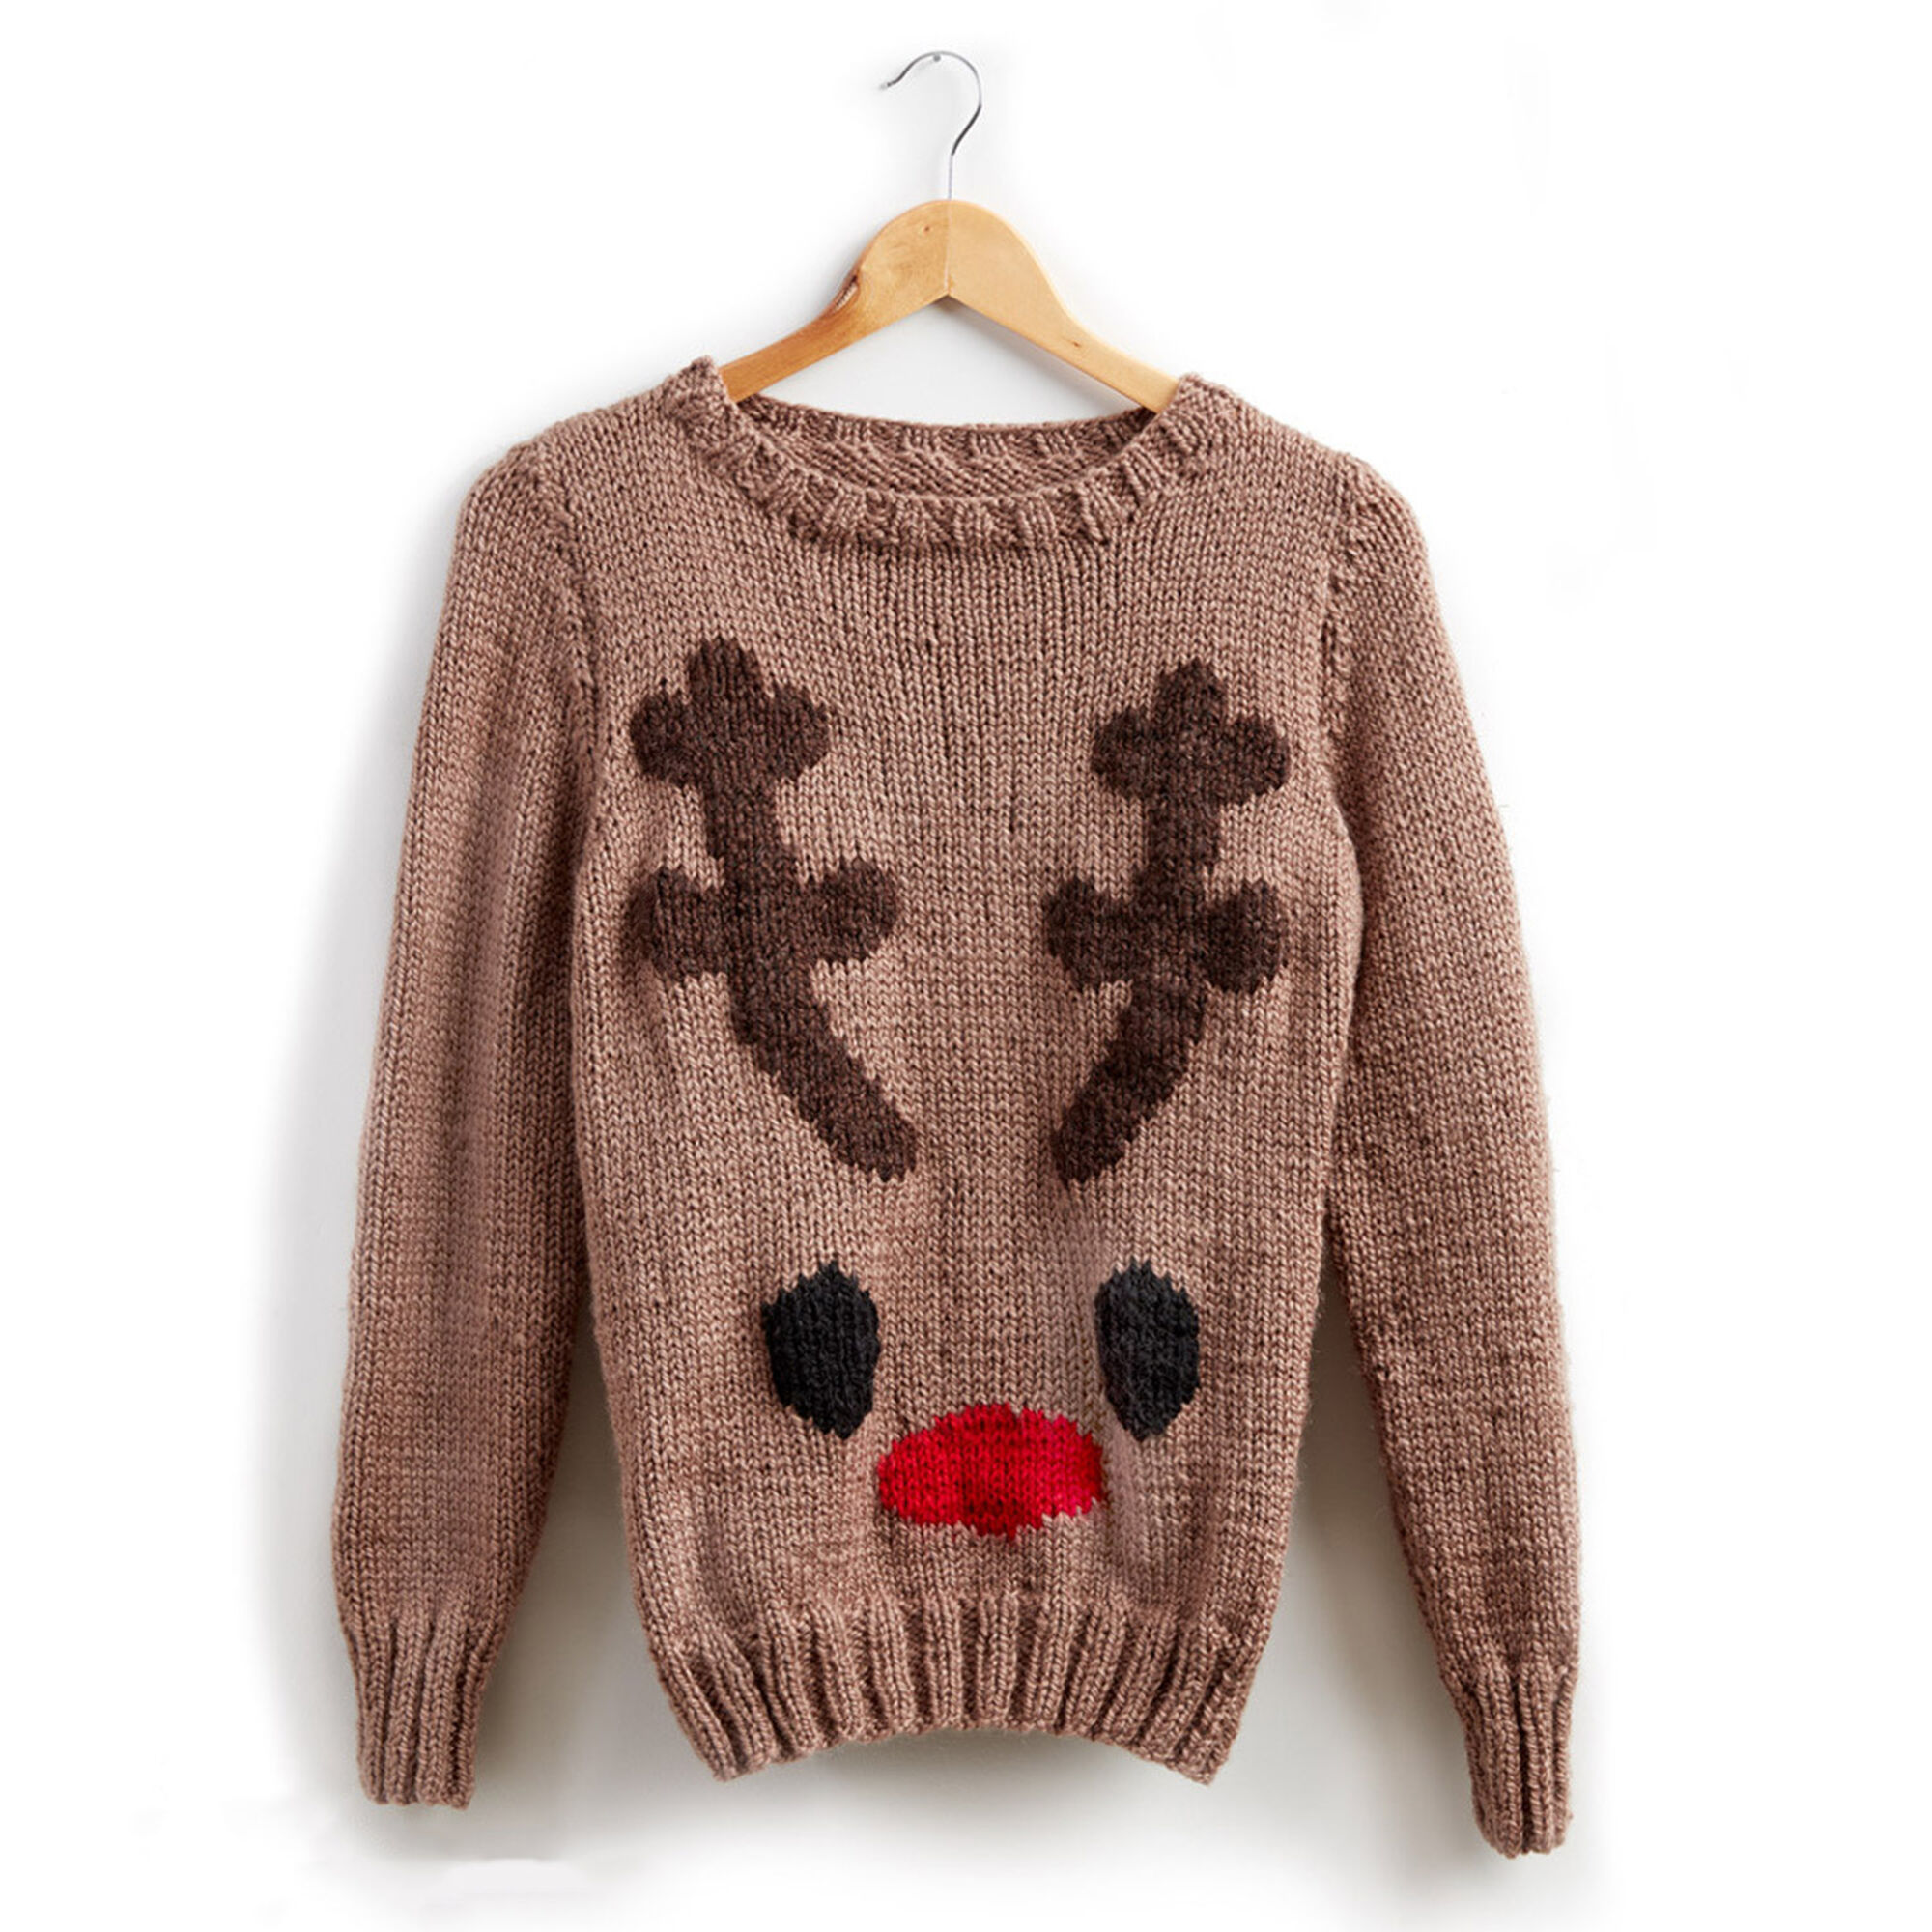 Patons Reindeer Knit Holiday Sweater, XS/S   Yarnspirations